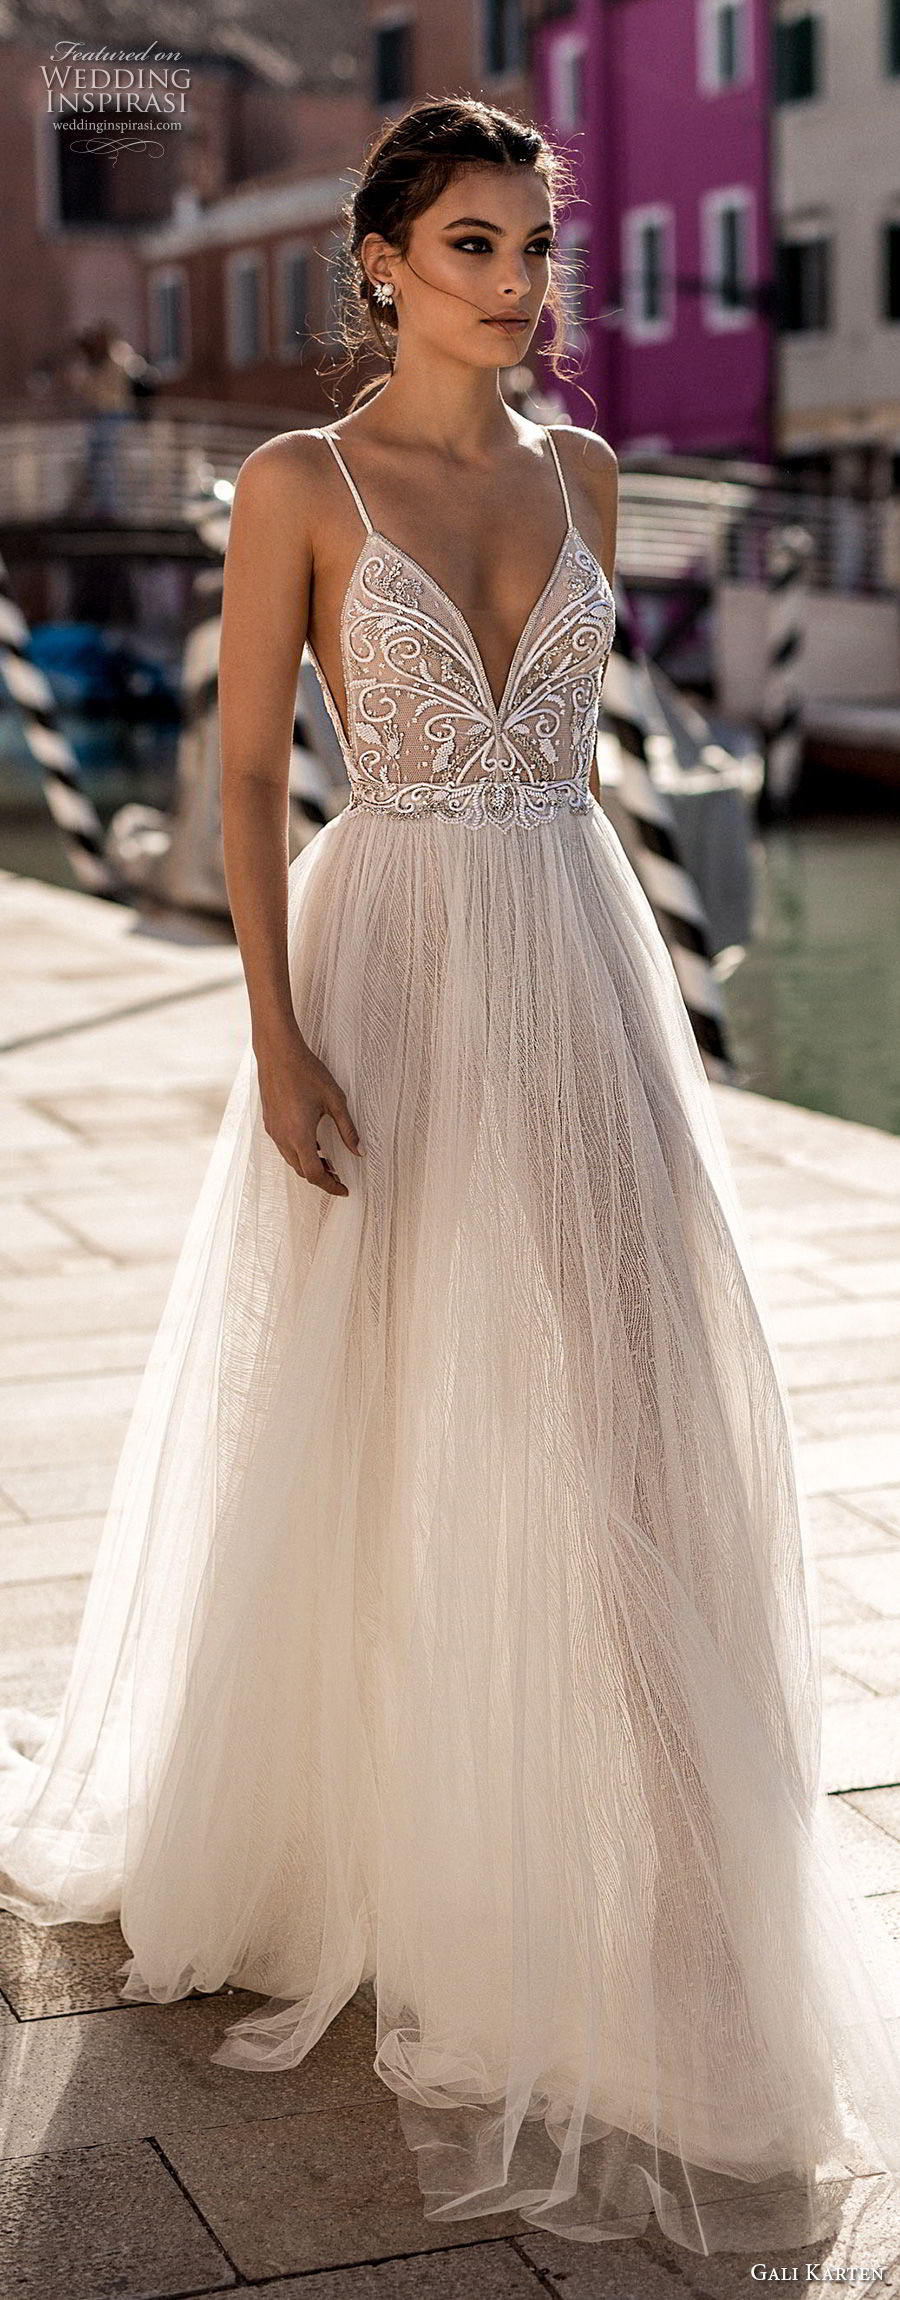 gali karten 2018 bridal spaghetti strap deep plunging sweetheart neckline heavily embellished bodice high slit skirt soft a line wedding dress open scoop back sweep train (5) lv